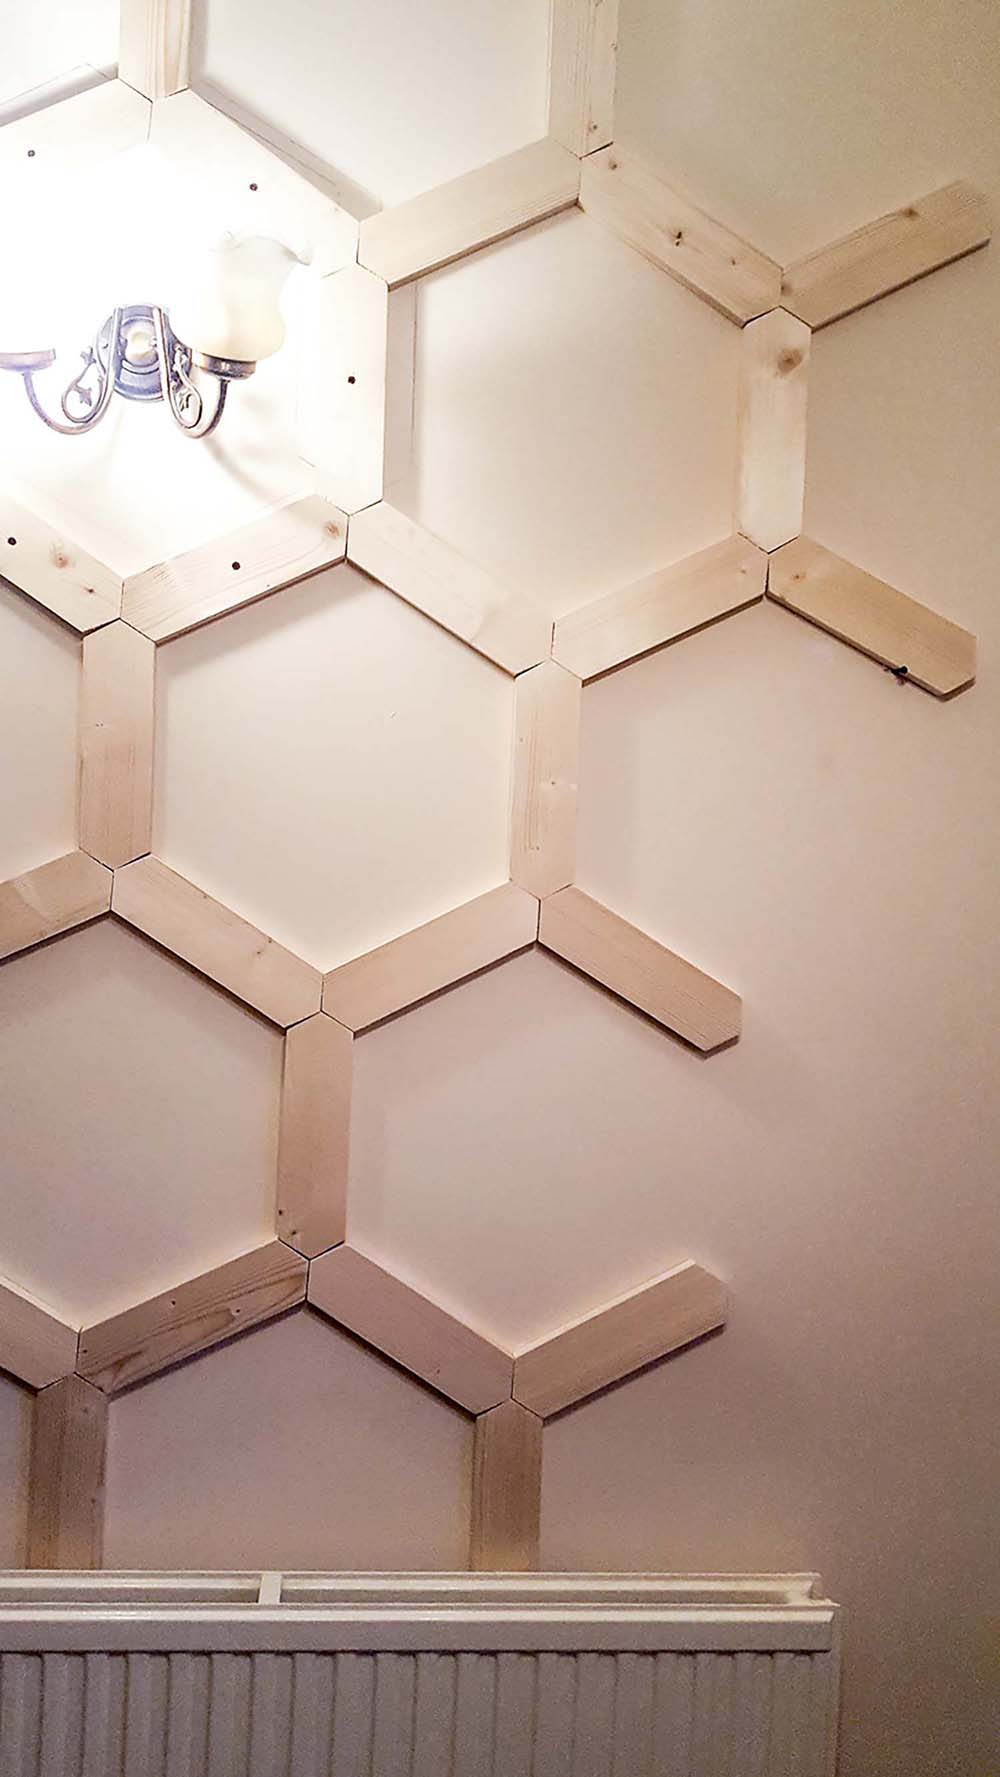 How To Diy A Hex Panelled Wall Well I Guess This Is Growing Up